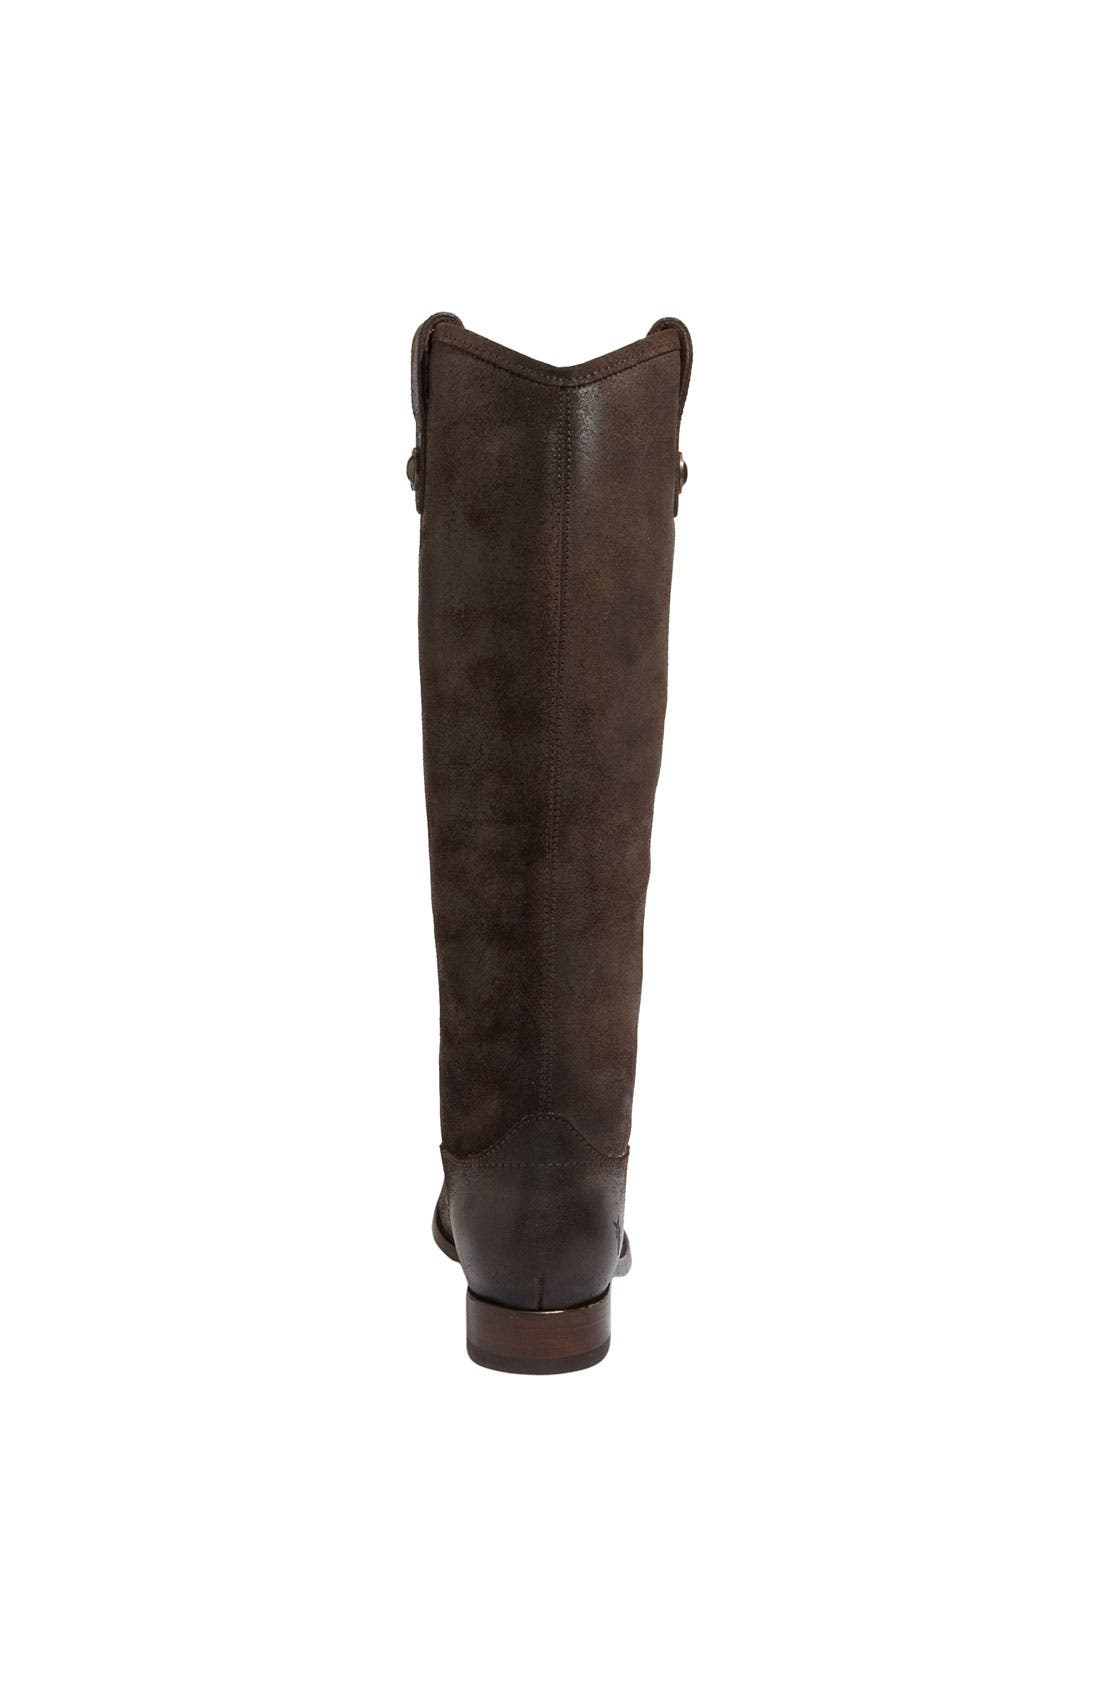 'Melissa Button' Leather Riding Boot,                             Alternate thumbnail 113, color,